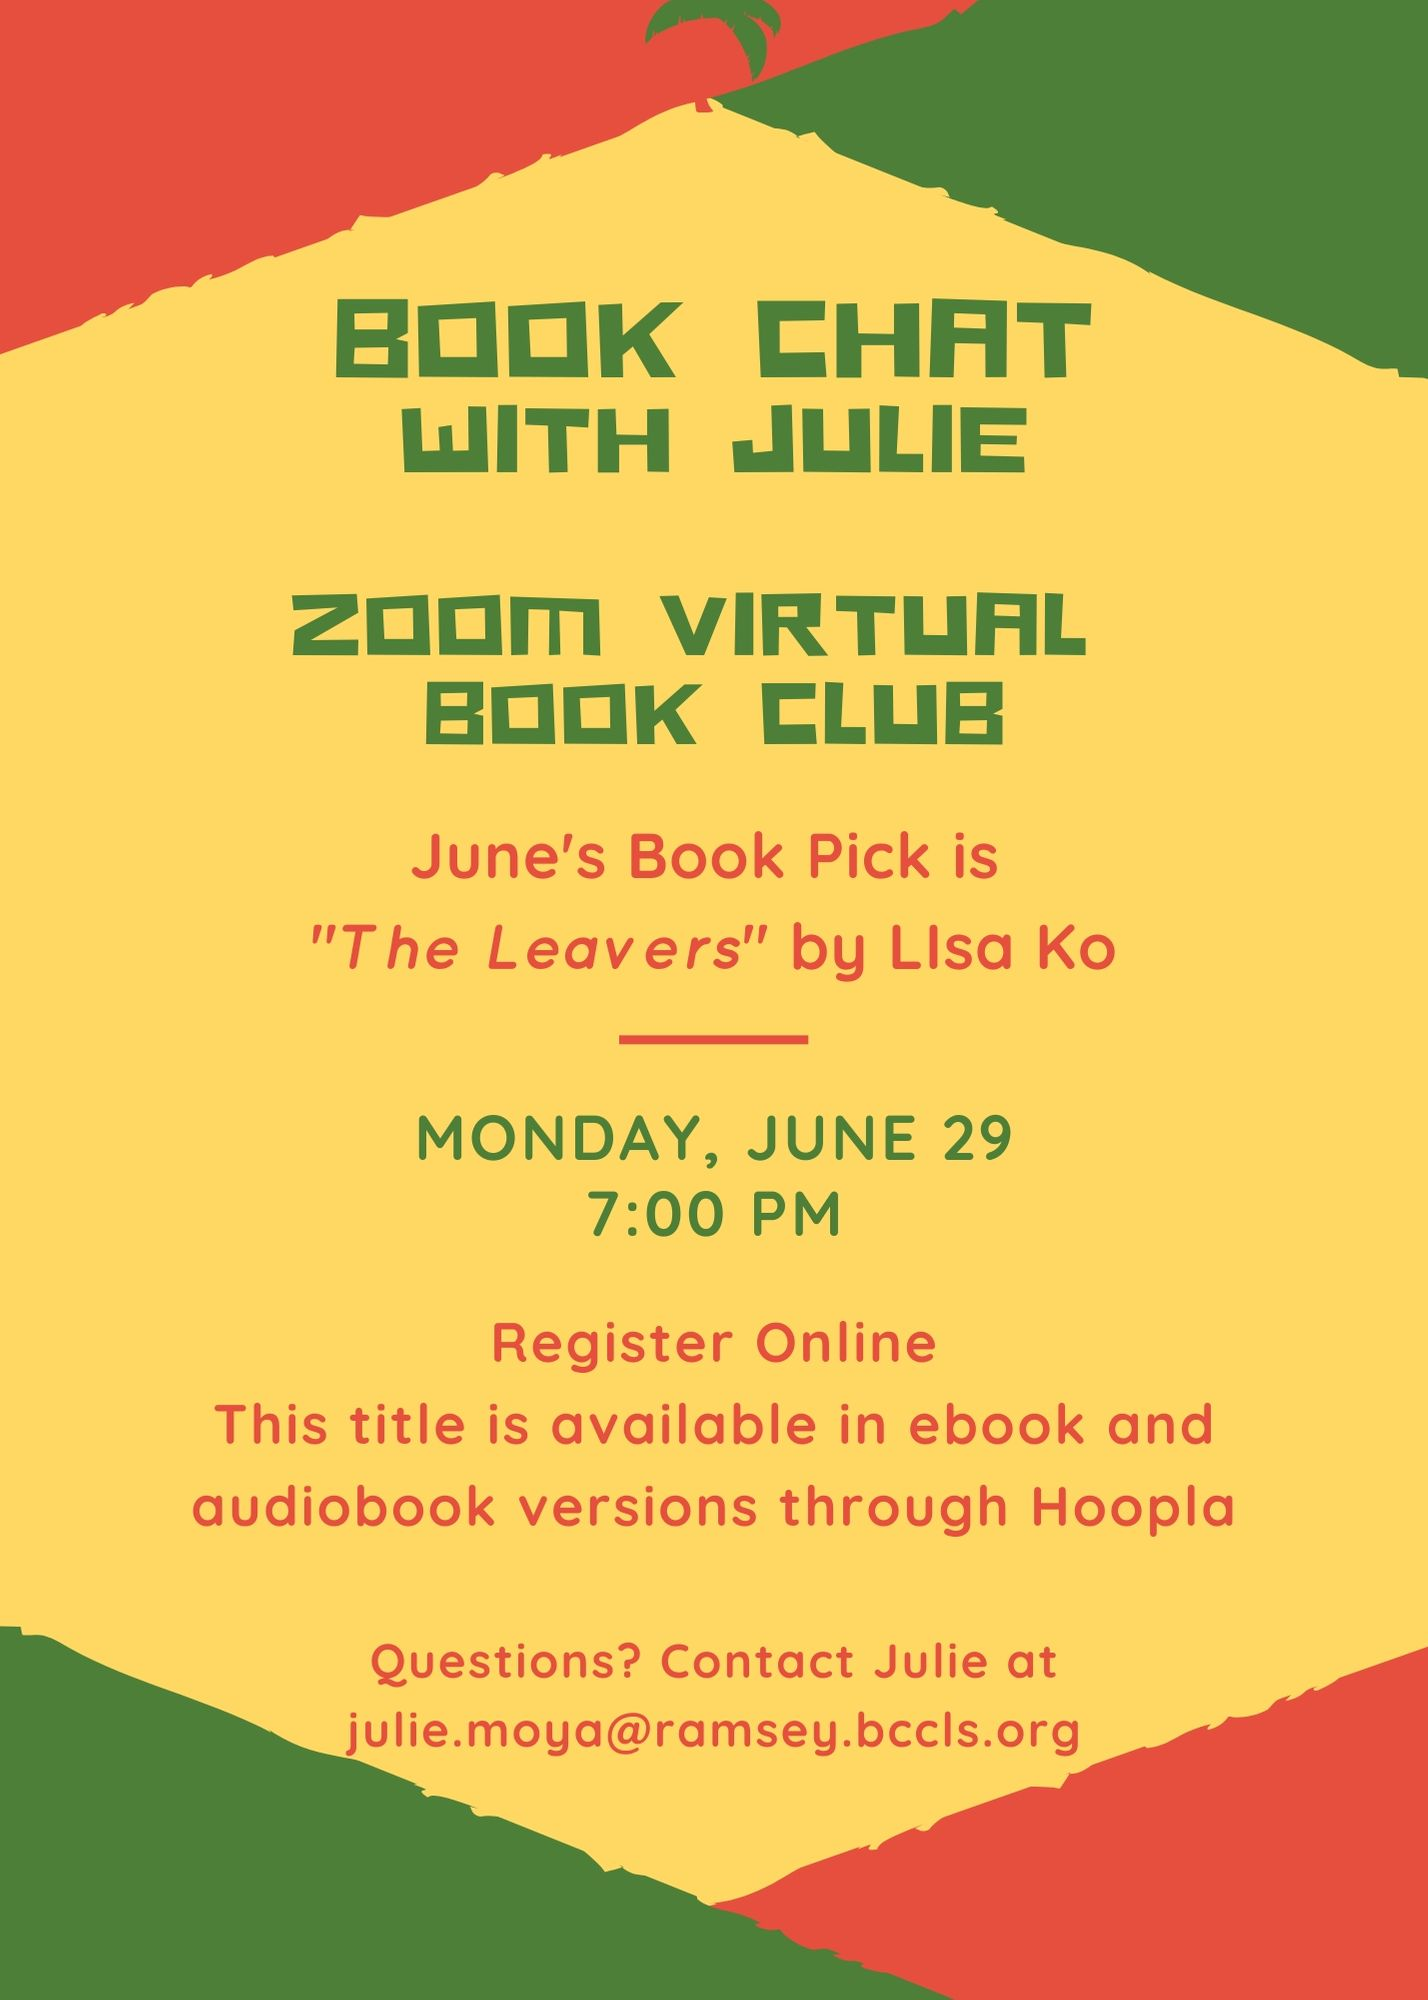 Book Chat w Ms. Julie